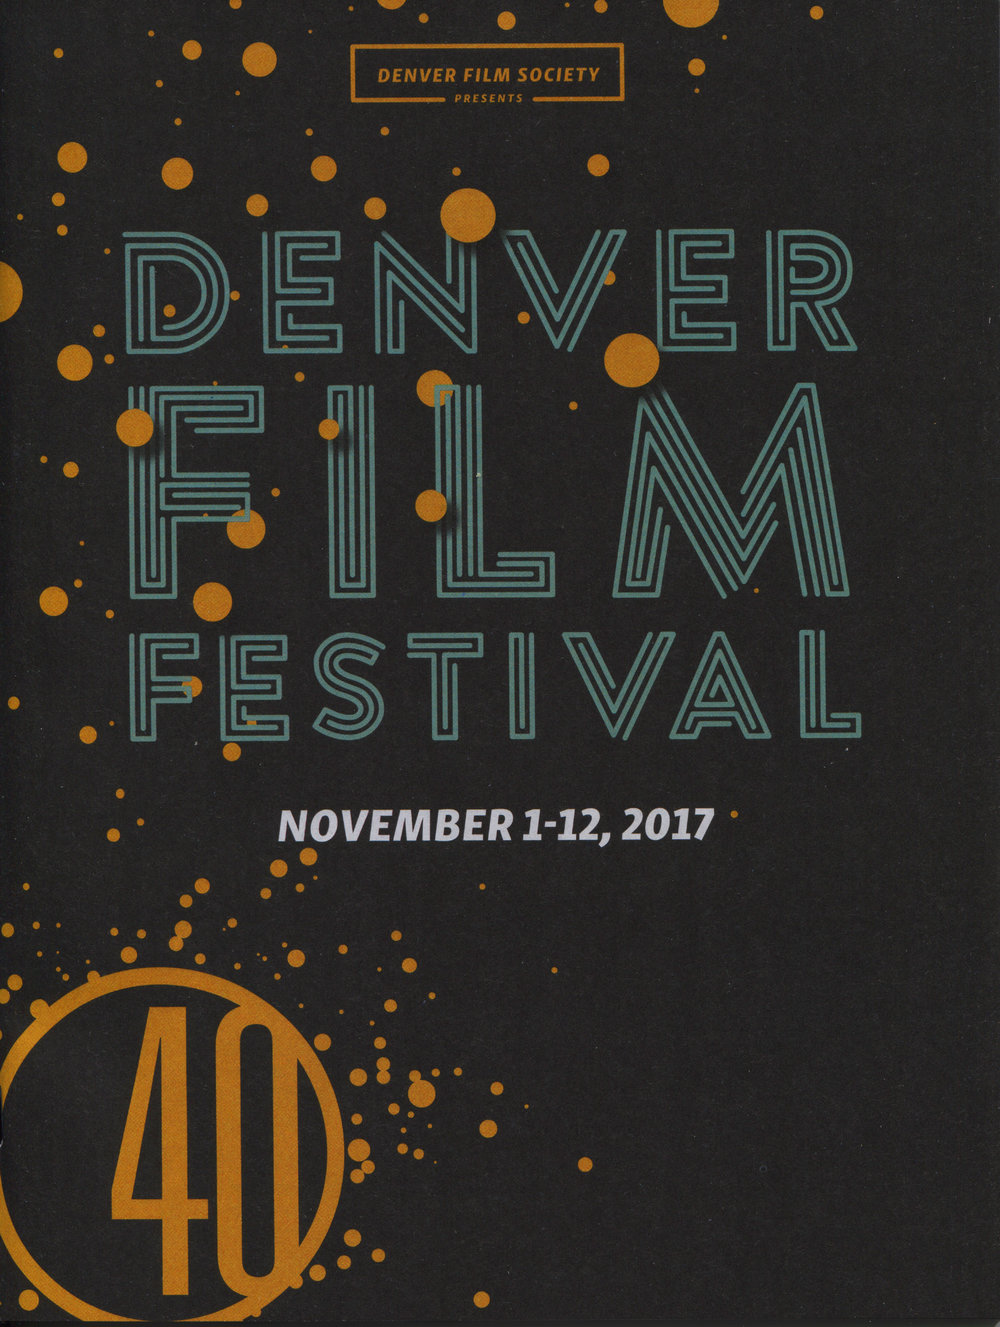 Denver Film Festival 40 Program